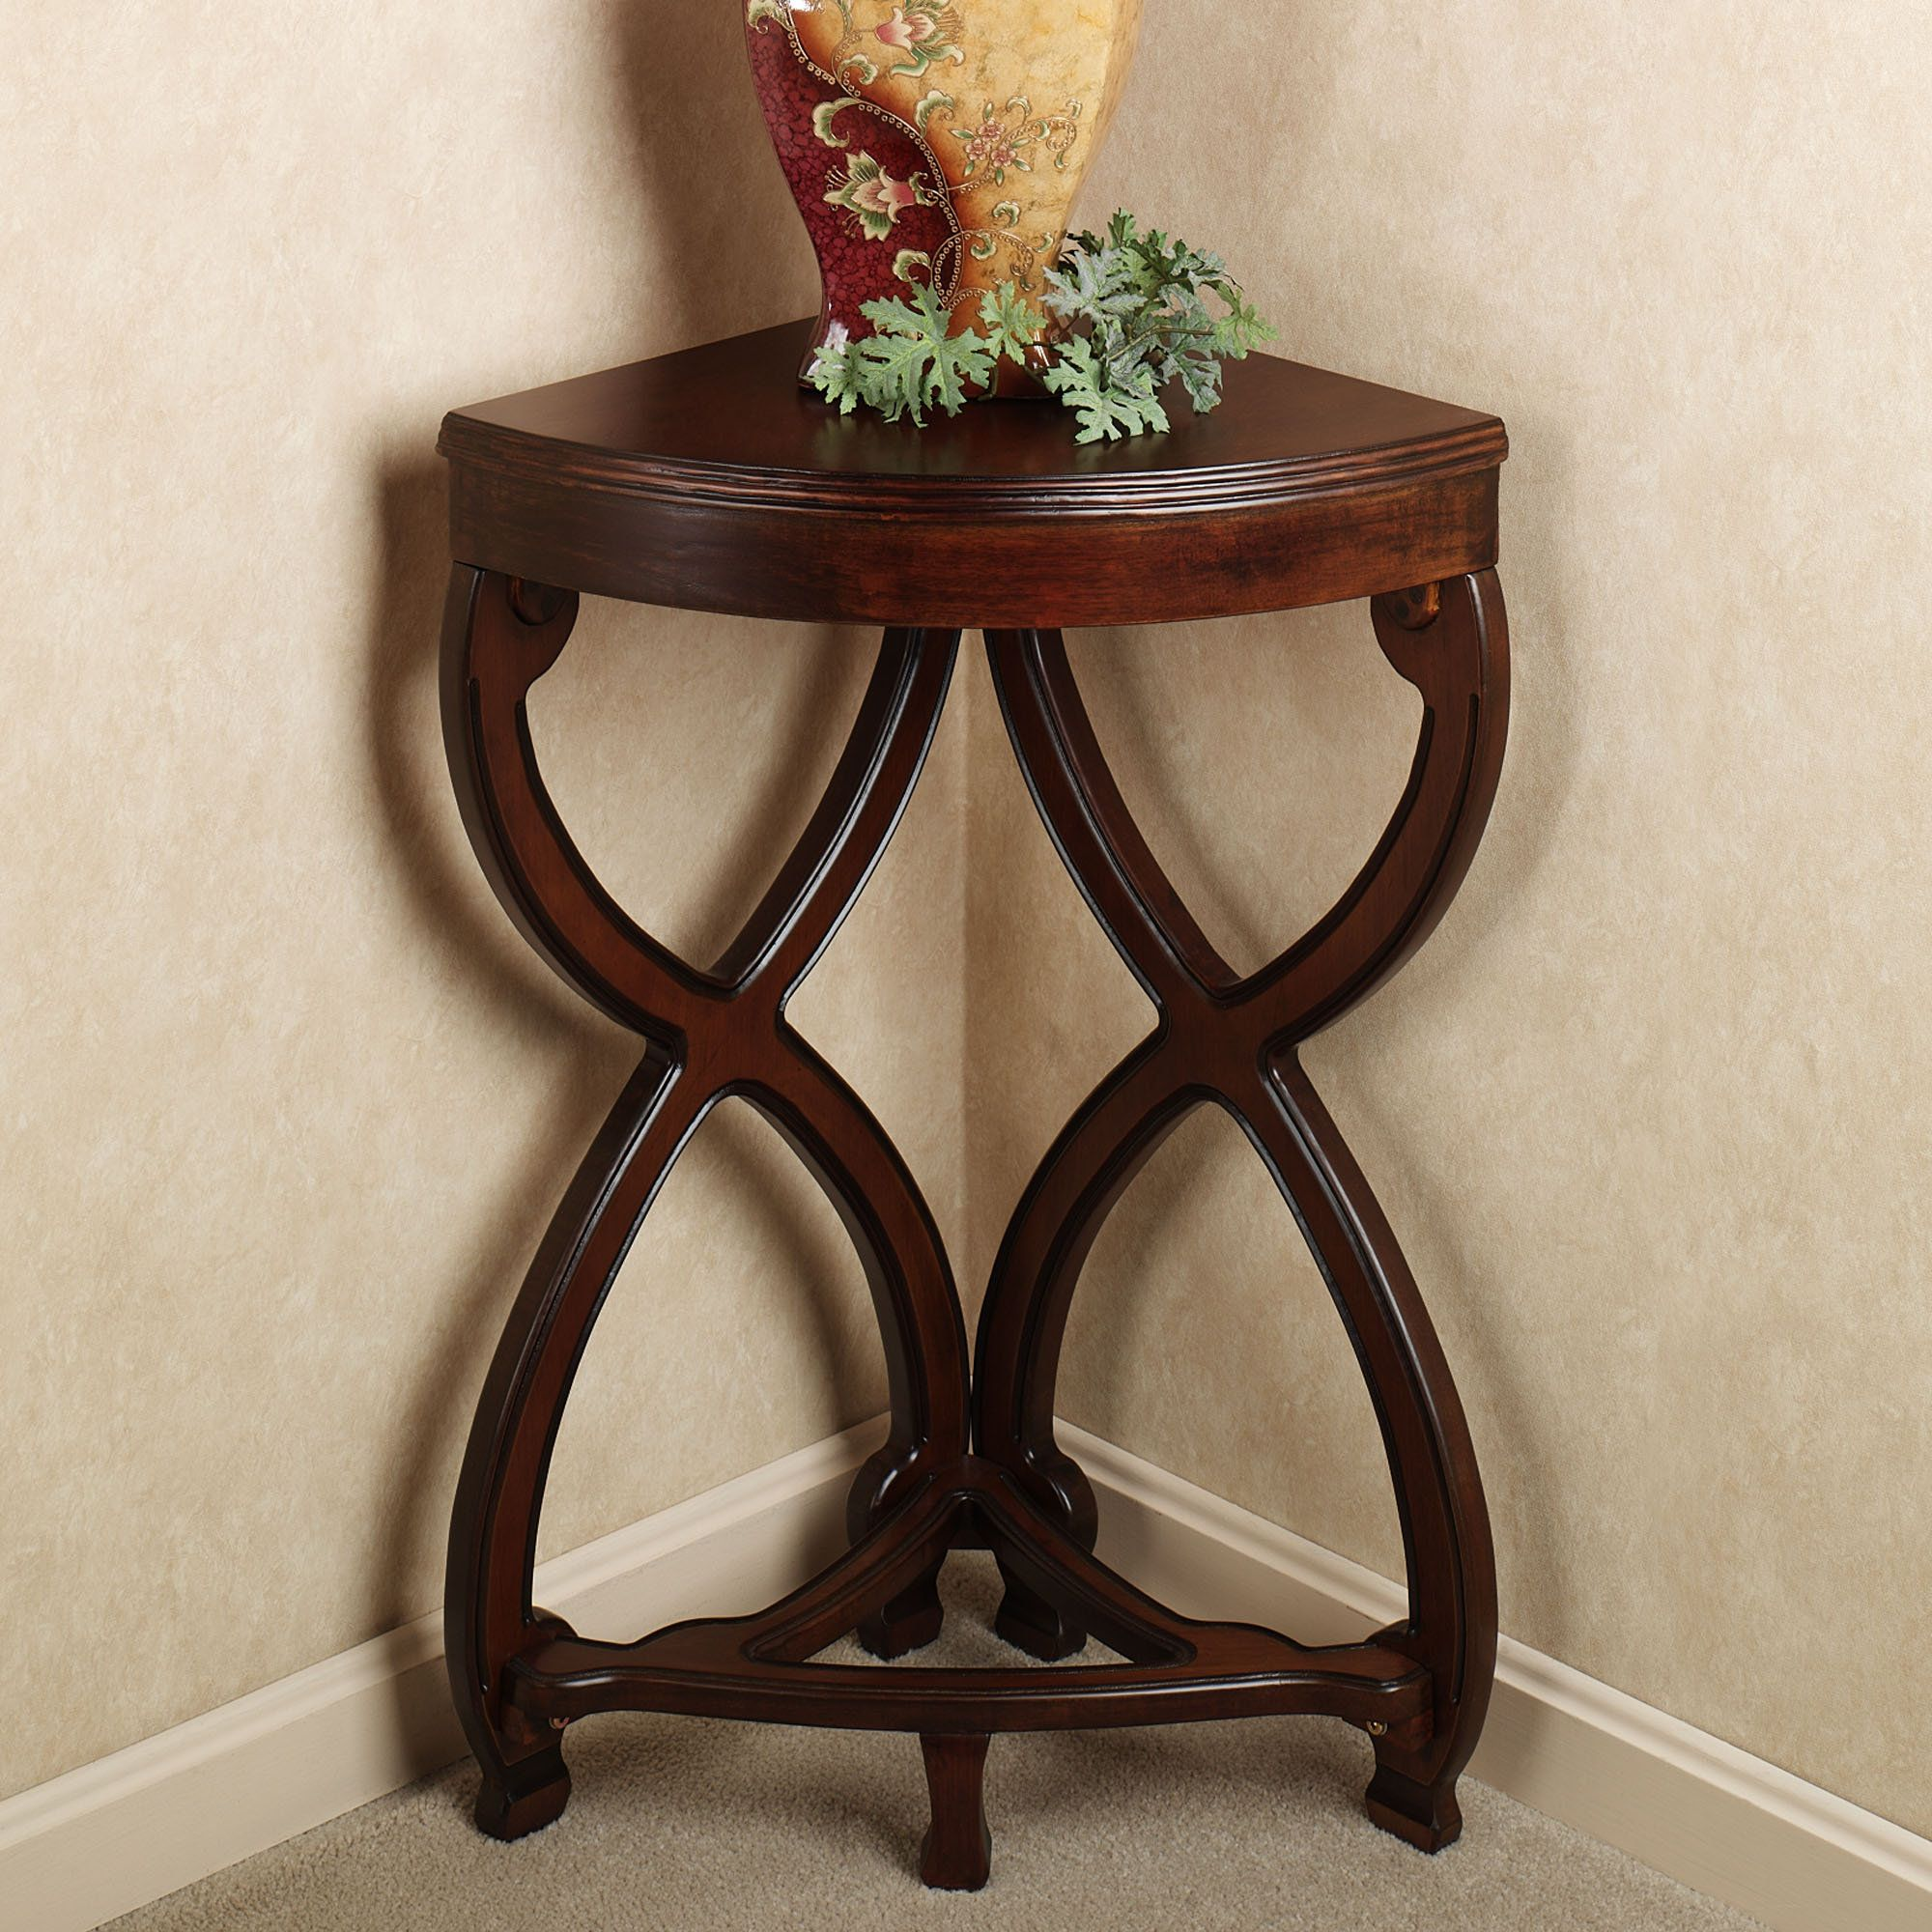 Adding Corner Accent Table In The Kitchen Corner Accent Table Corner Table Designs Corner Table